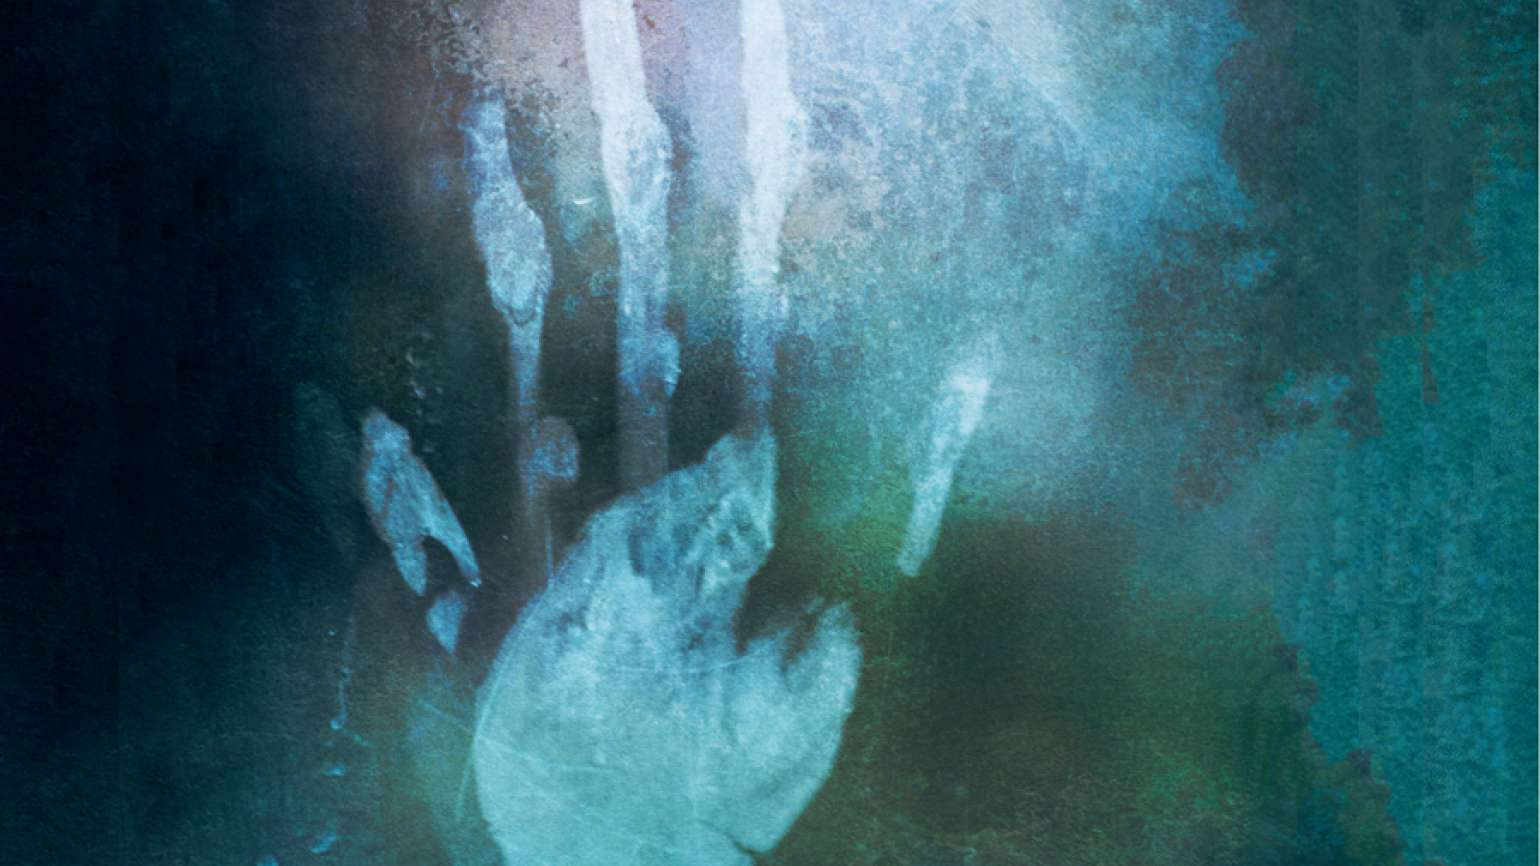 A mysterious hand appears against the green-gray of a mirror.